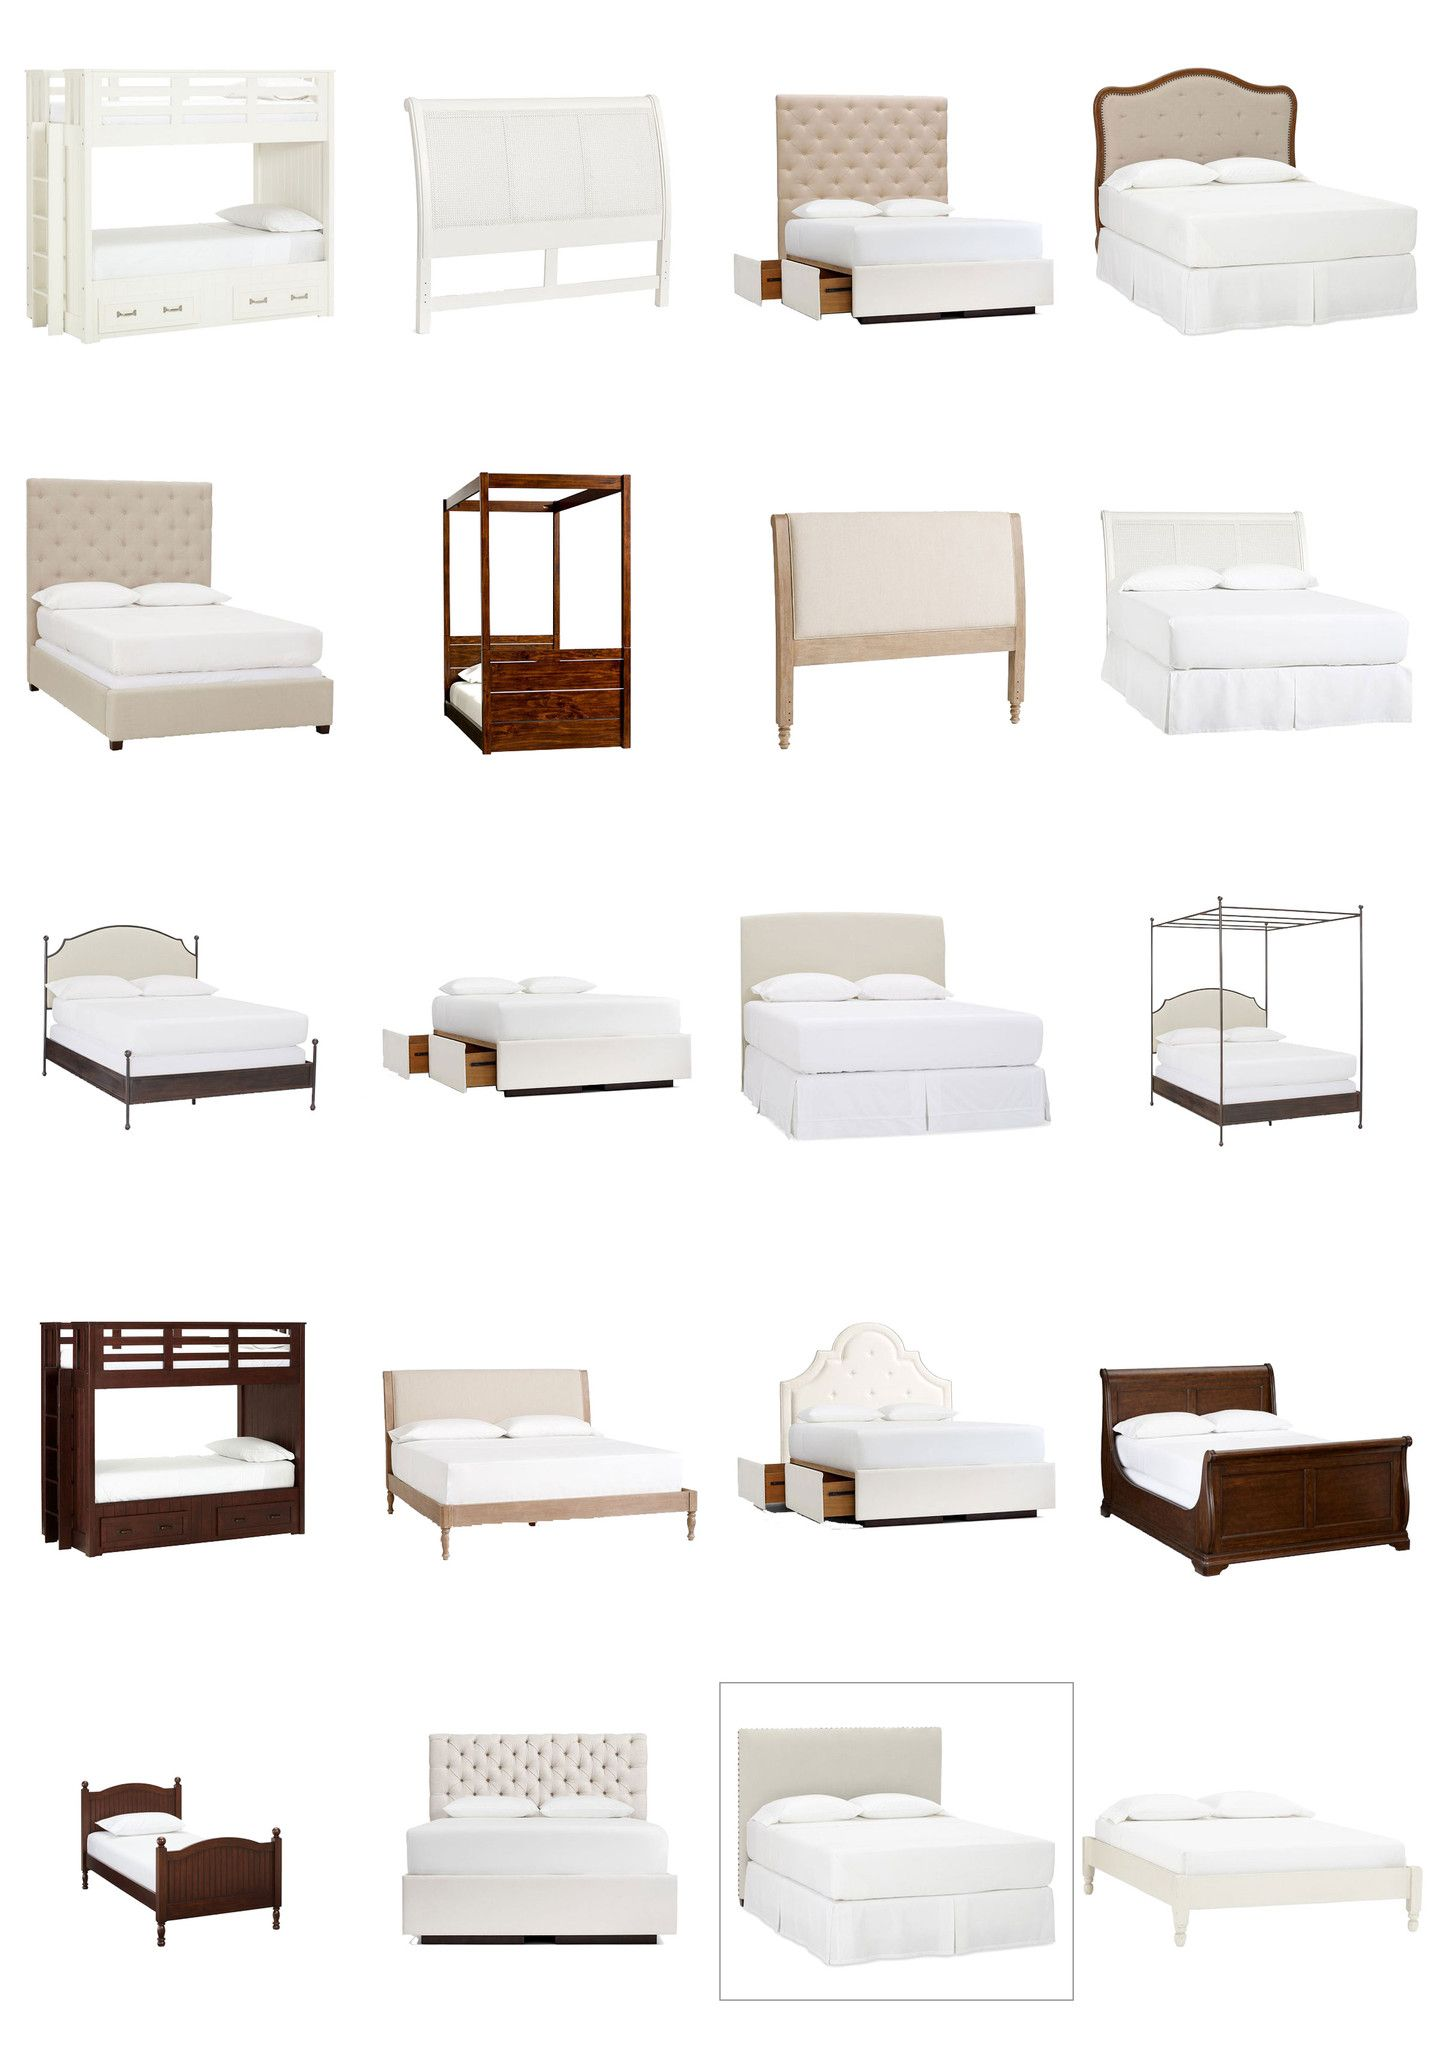 Bedroom Chair Cad Block Russel Wright Folding Photoshop Psd Bed Blocks V1  Design Free